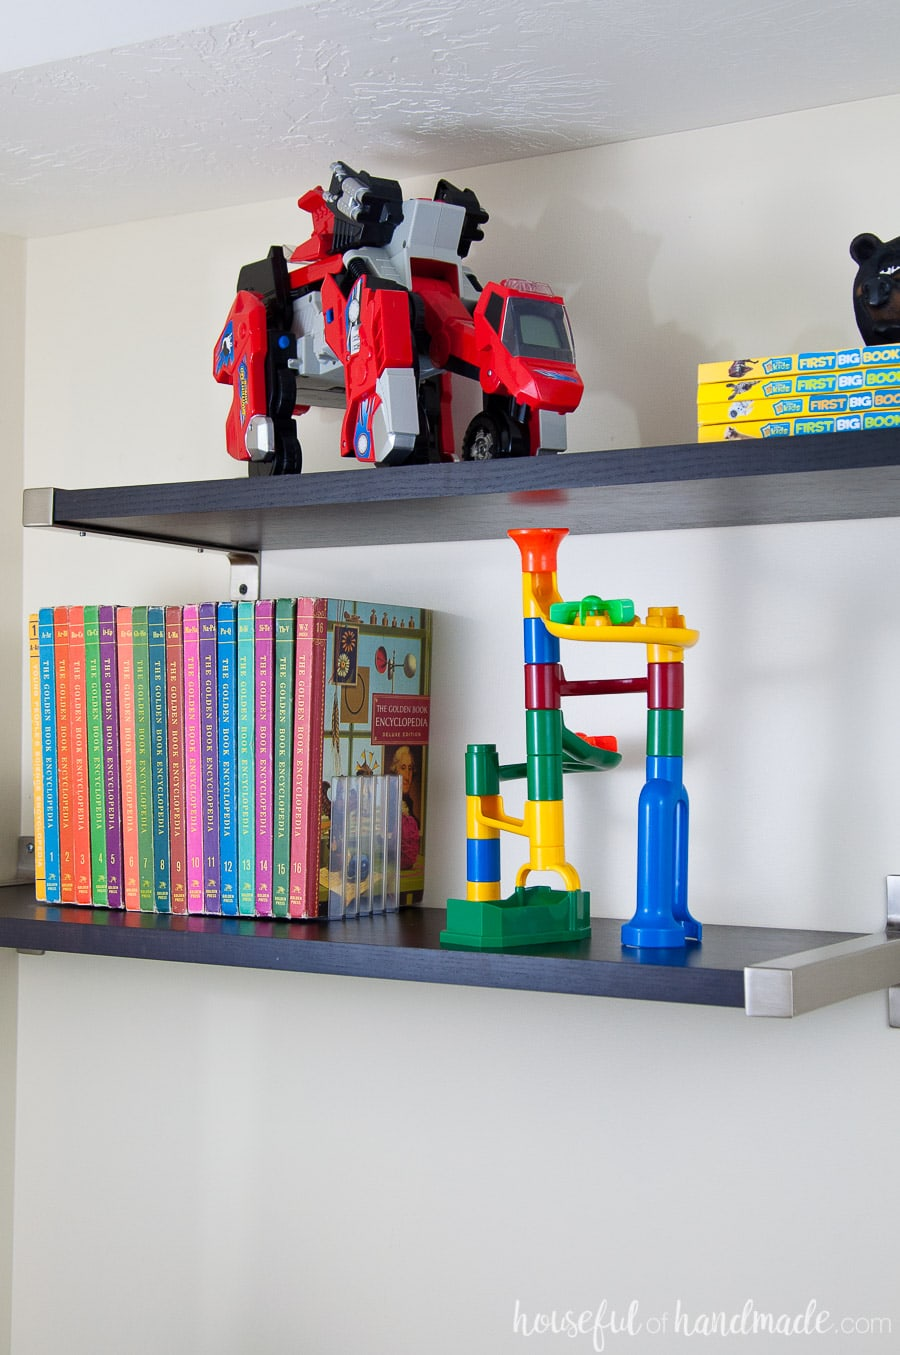 Floating wall shelves from Ikea to store books and toys in a boys bedroom.